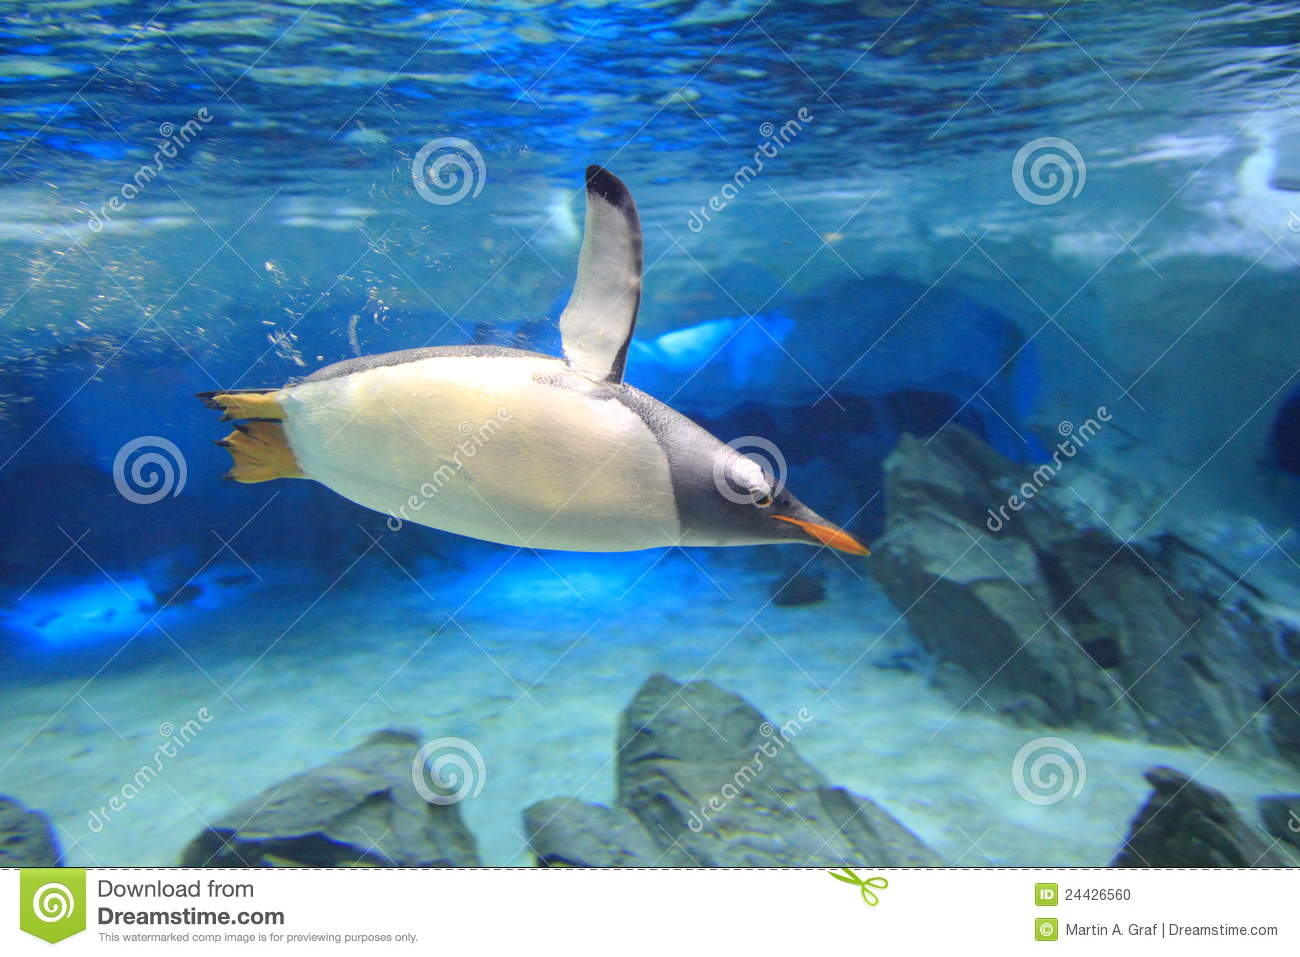 Penguin underwater in sea cave scenery